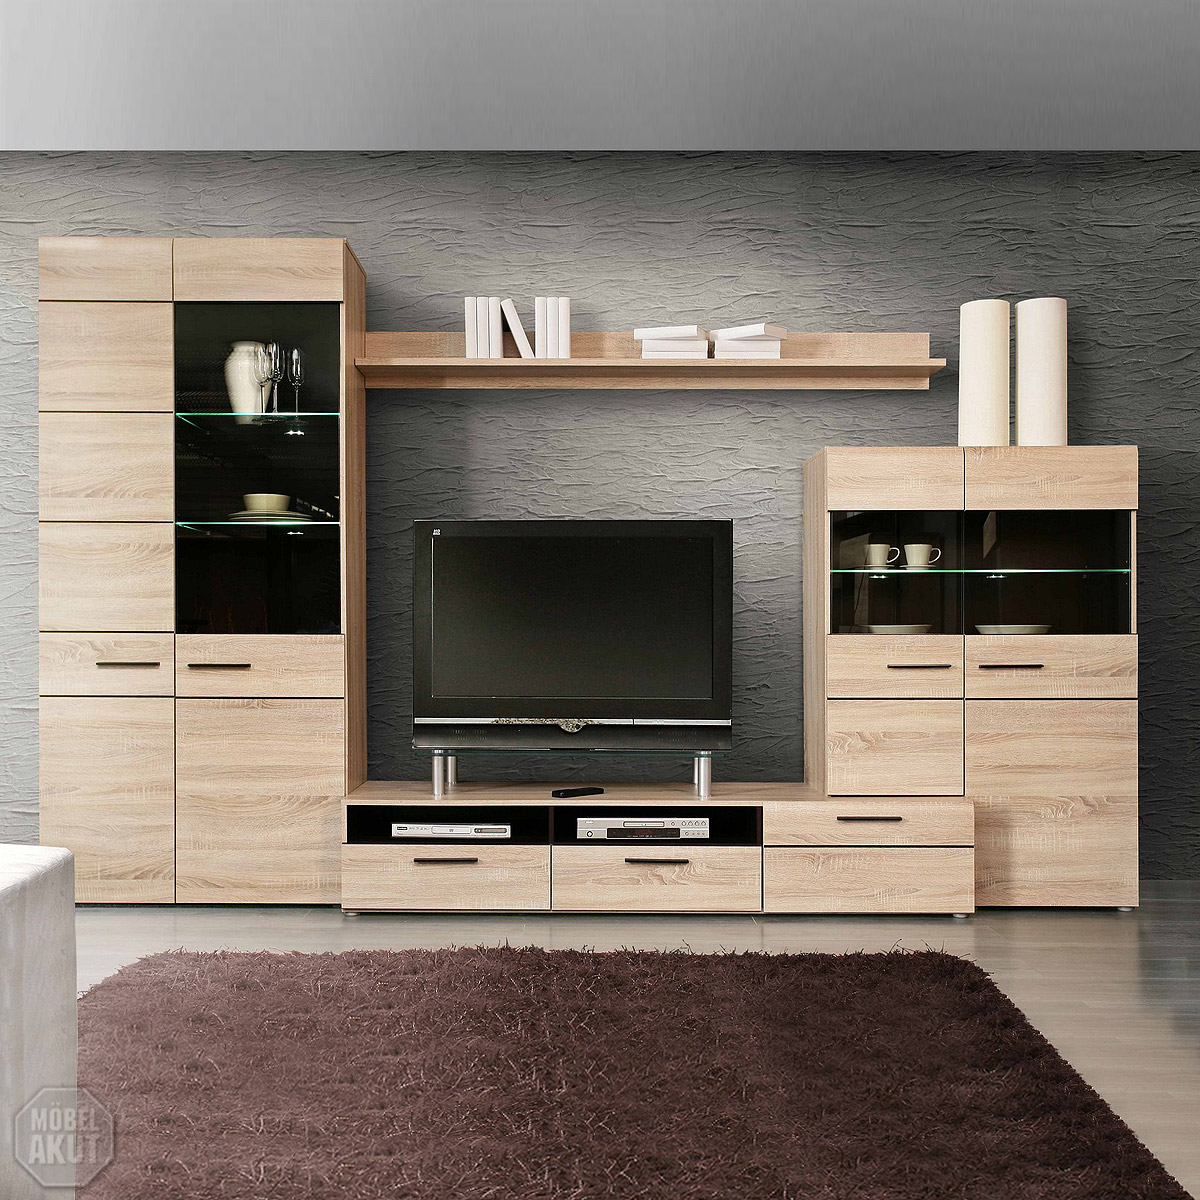 wohnwand 3 combino anbauwand wohnzimmer sonoma denver eiche wenge led ebay. Black Bedroom Furniture Sets. Home Design Ideas